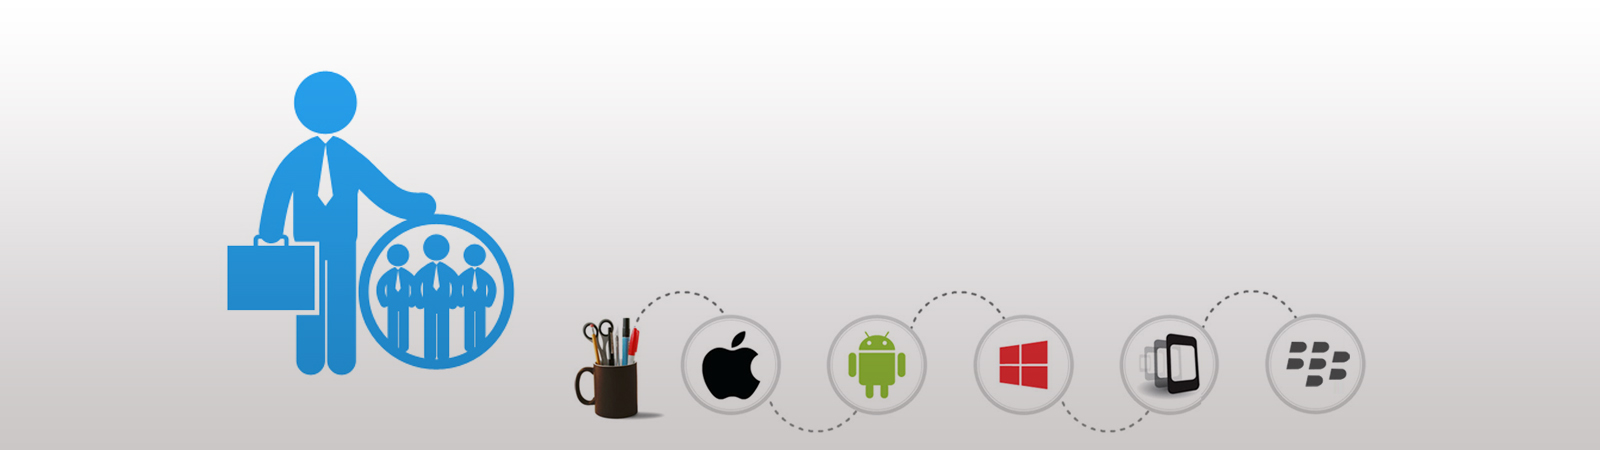 Hire iPhone, ipad, android, blackberry, windows mobile app developers India, USA, UK, Canada, Australia